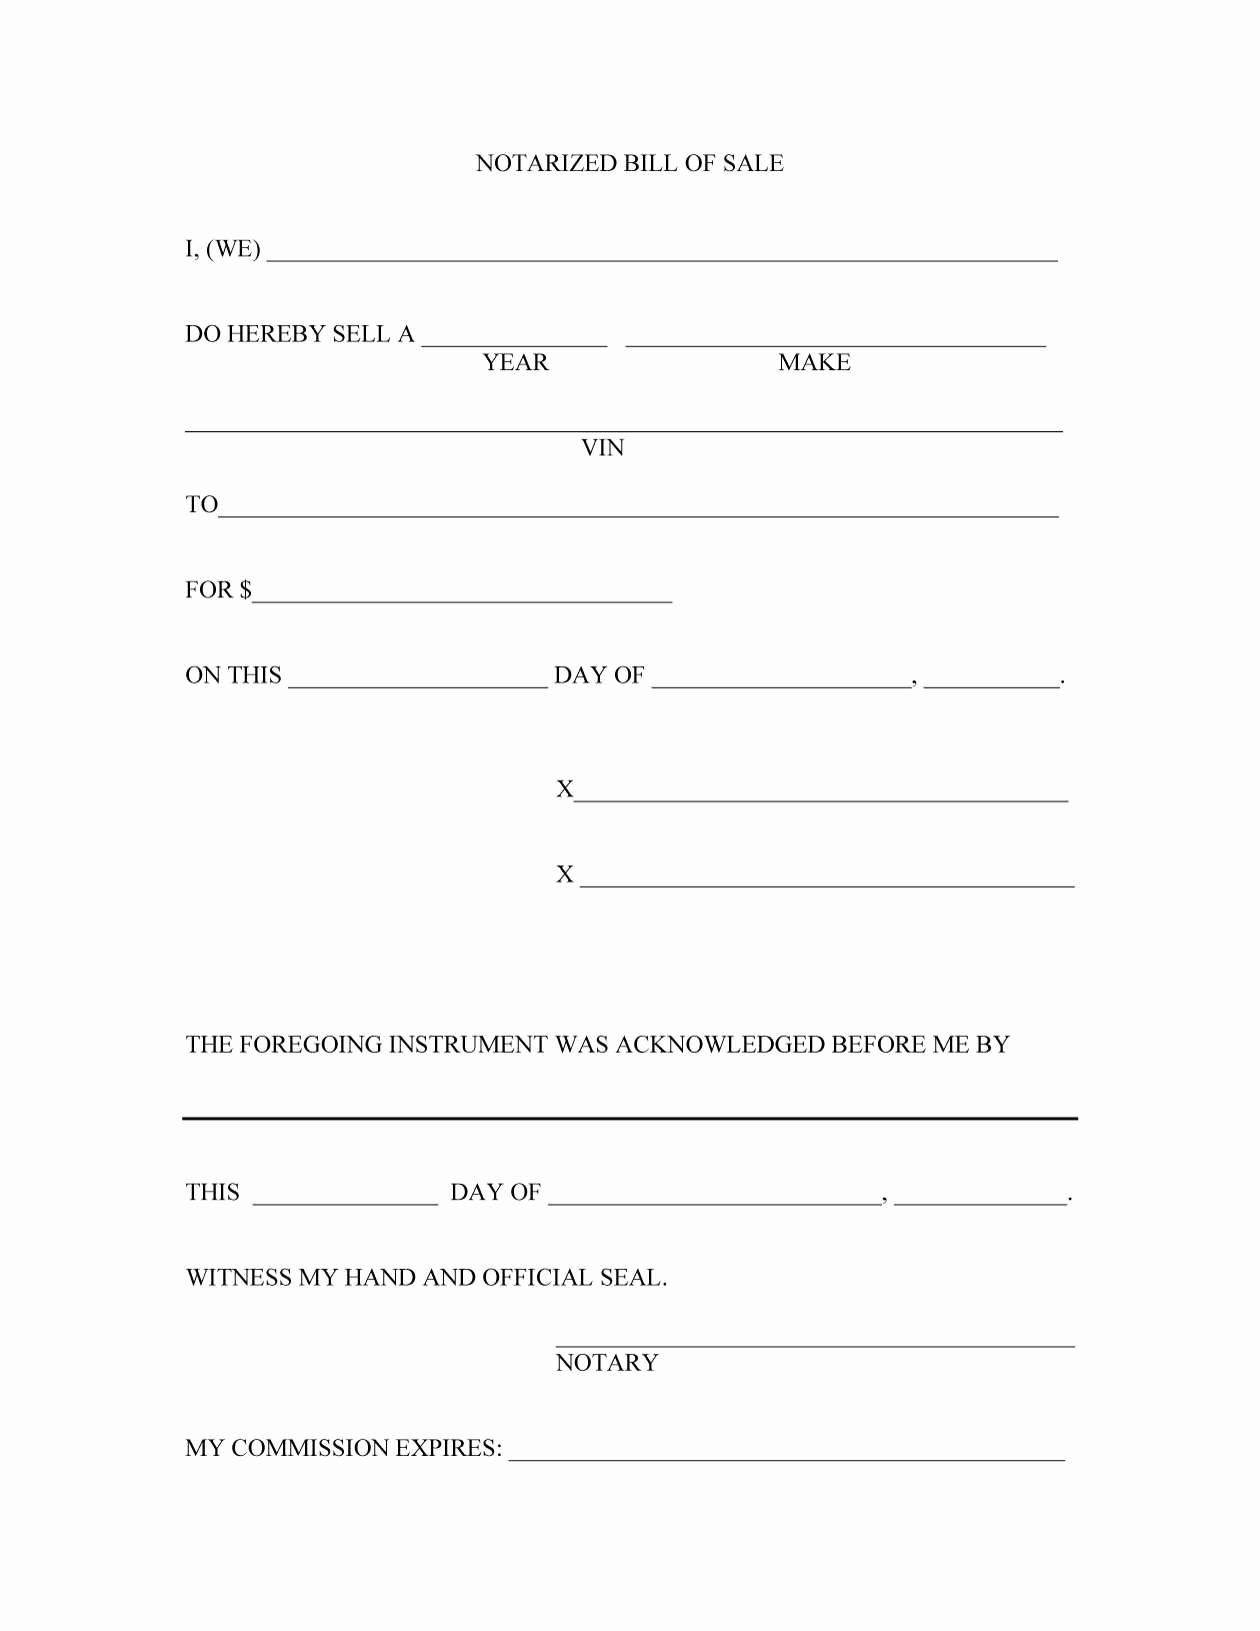 Template For Bill Of Sale For Car – Emeline.space - Free Printable Bill Of Sale Form